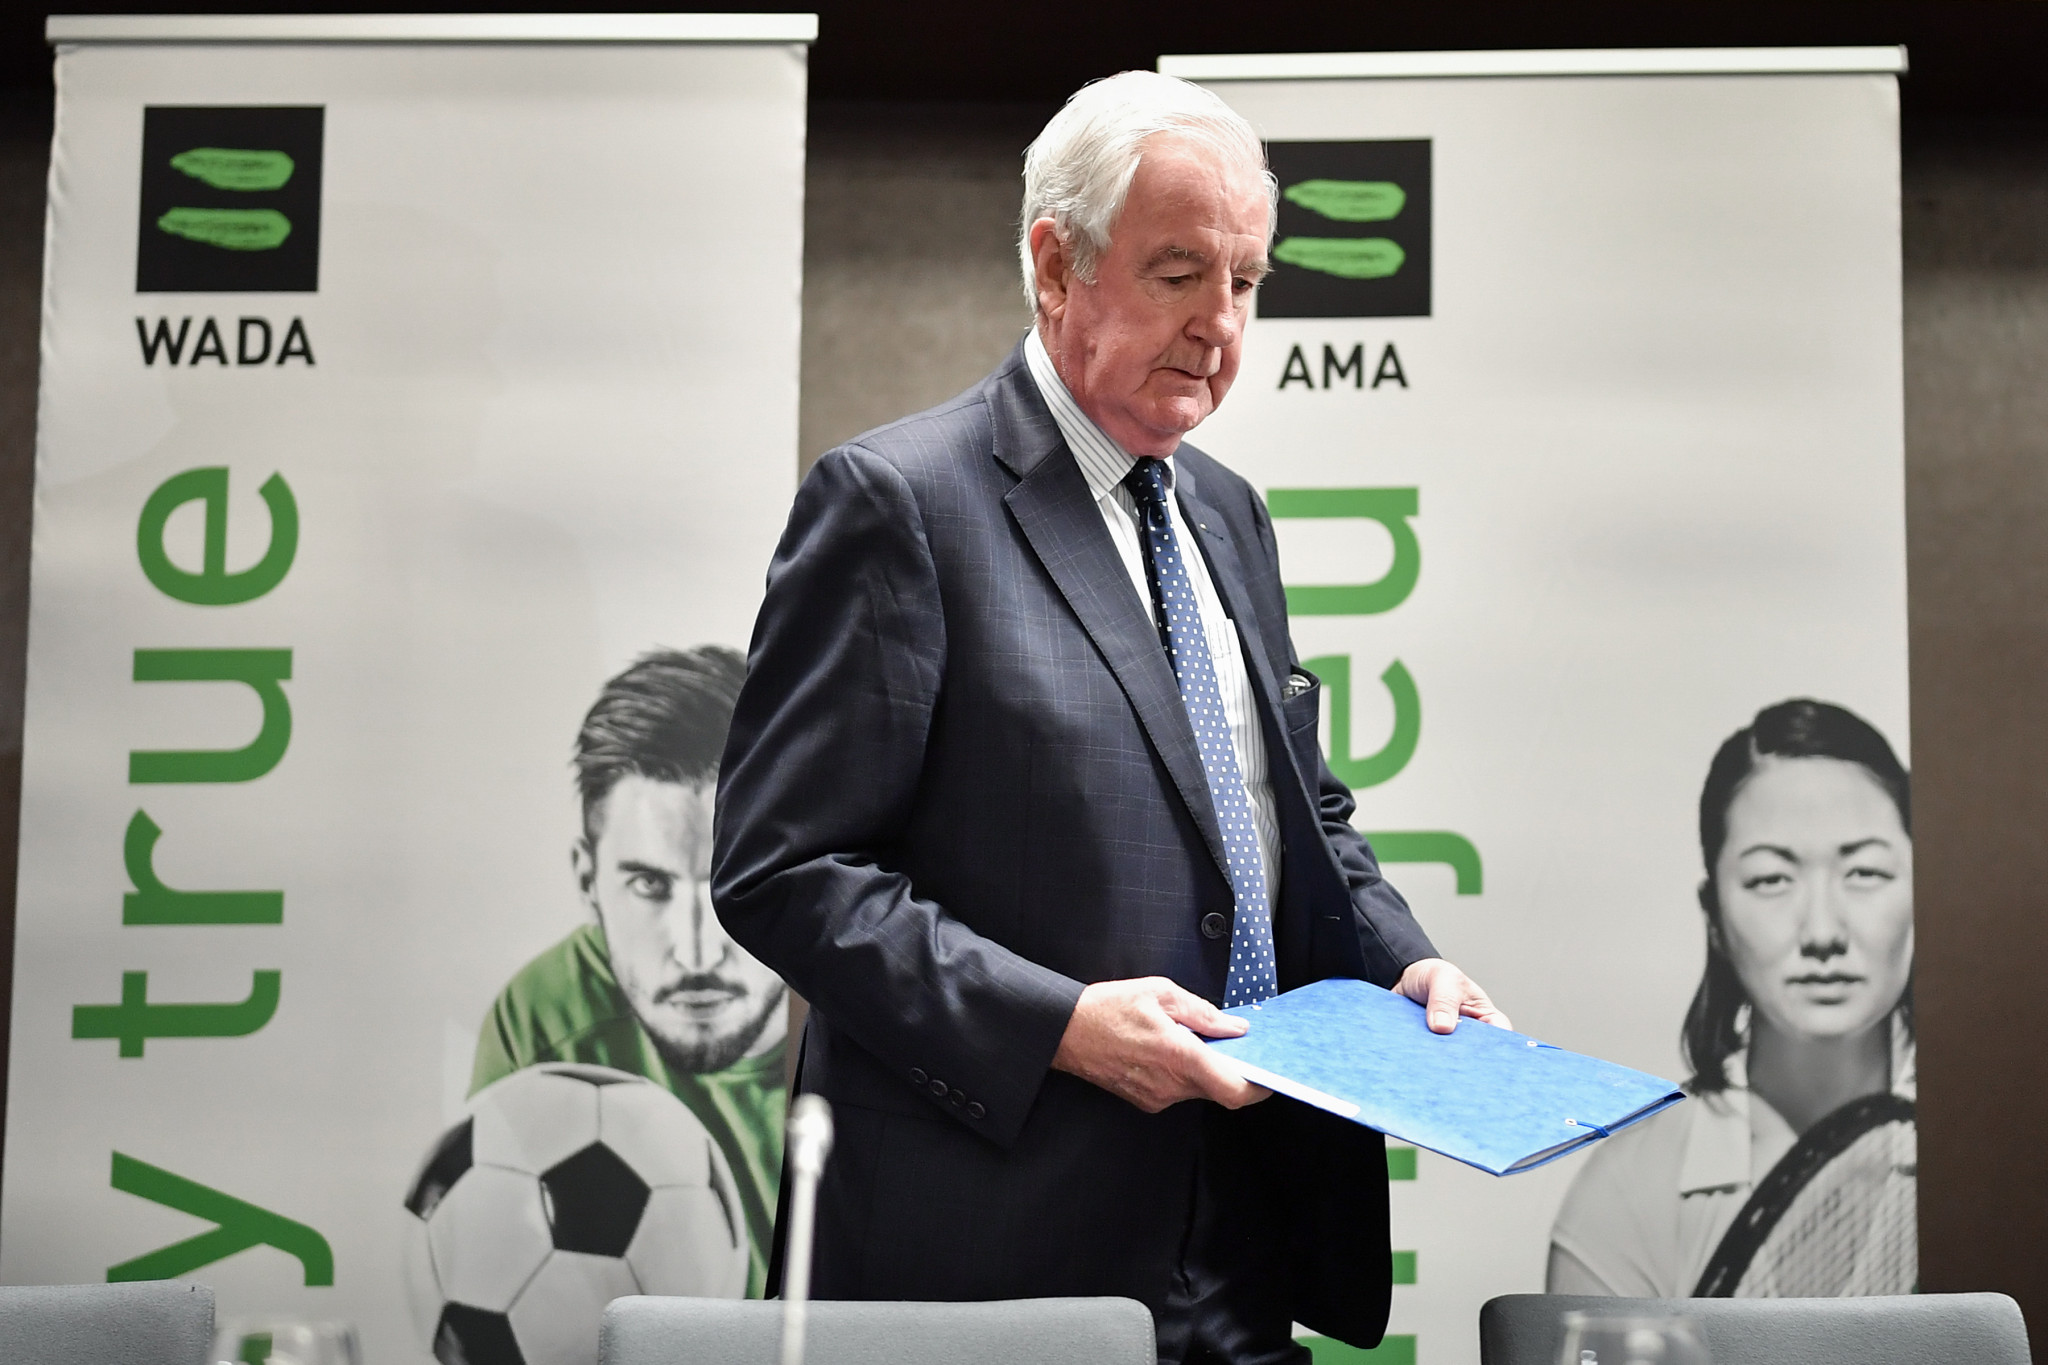 Sir Craig claims WADA stronger than ever despite Russian doping scandal